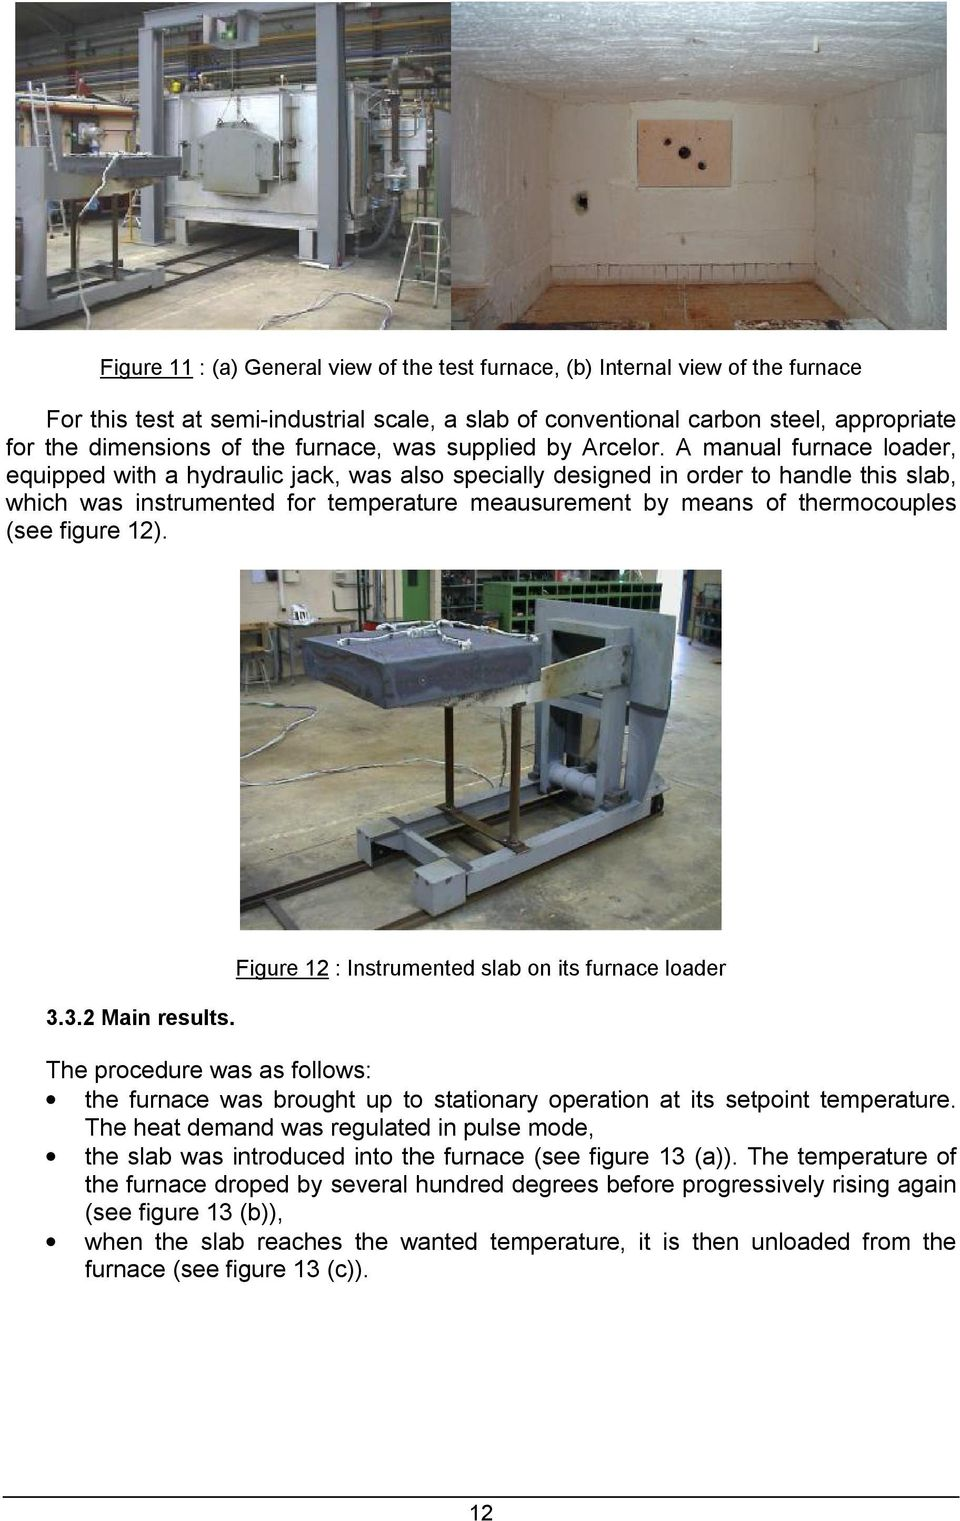 A manual furnace loader, equipped with a hydraulic jack, was also specially designed in order to handle this slab, which was instrumented for temperature meausurement by means of thermocouples (see